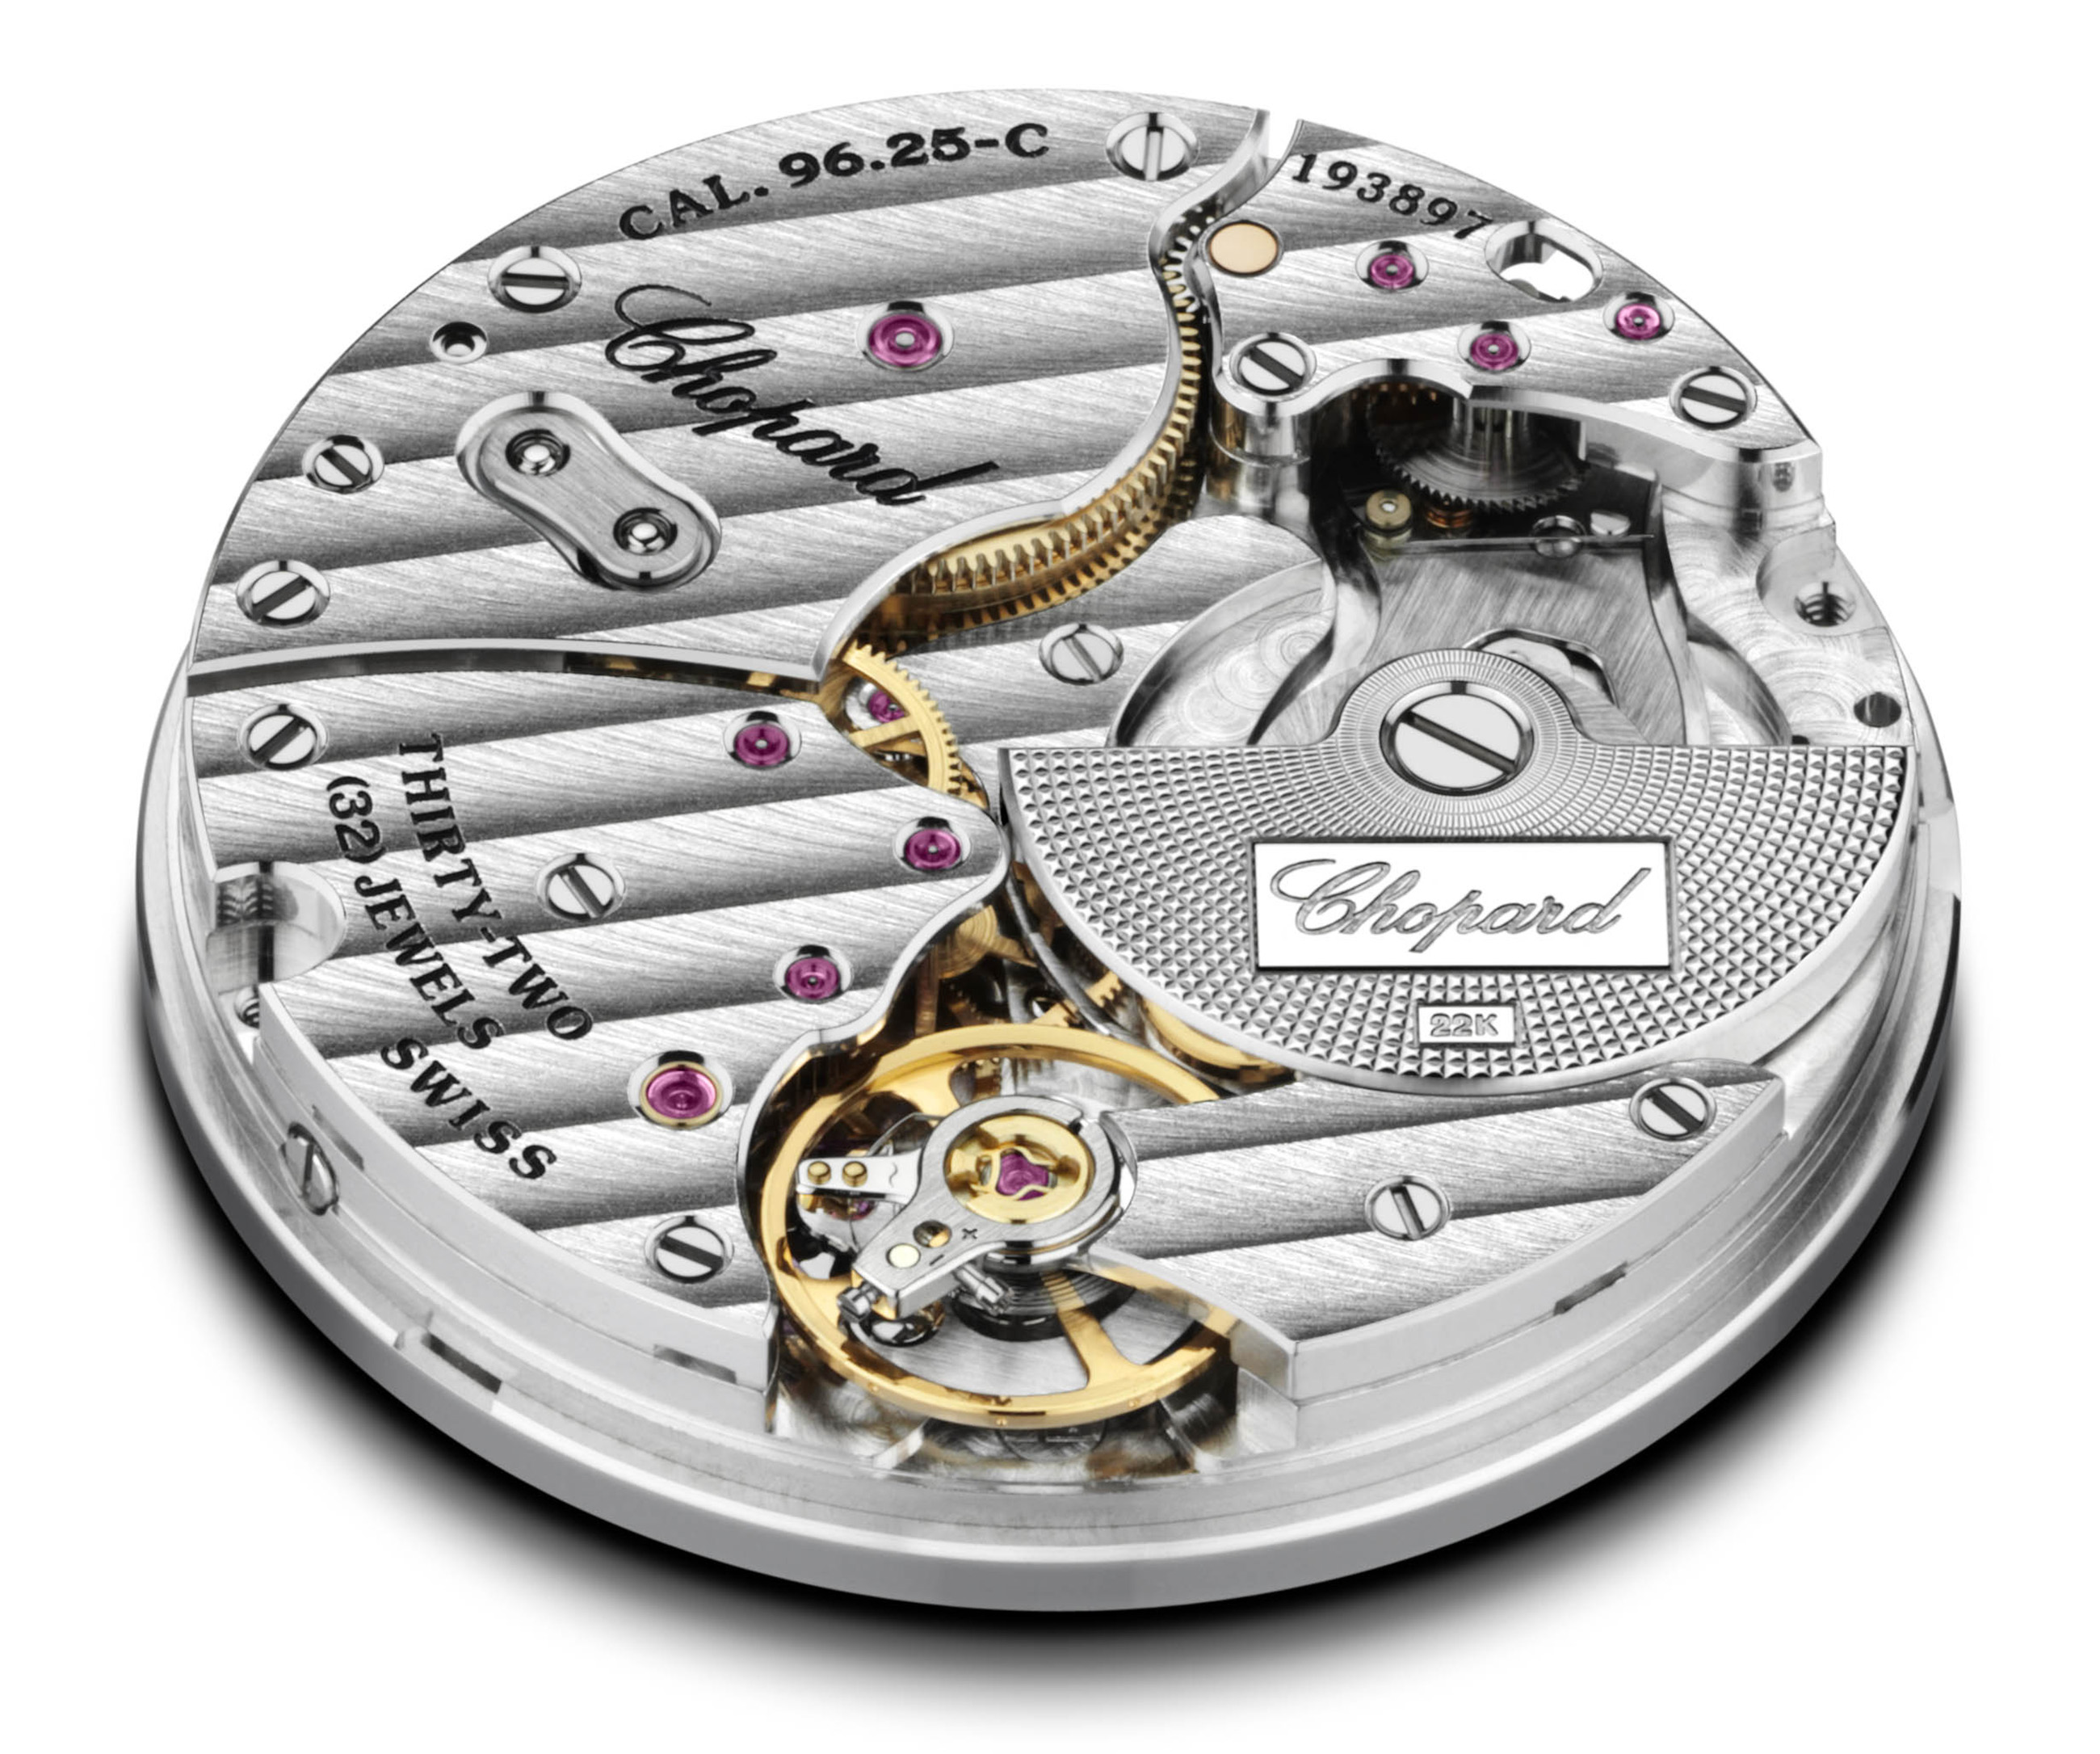 Imperiale Moonphase 384246-1001 - 96.25-C movement 2 copy.jpg